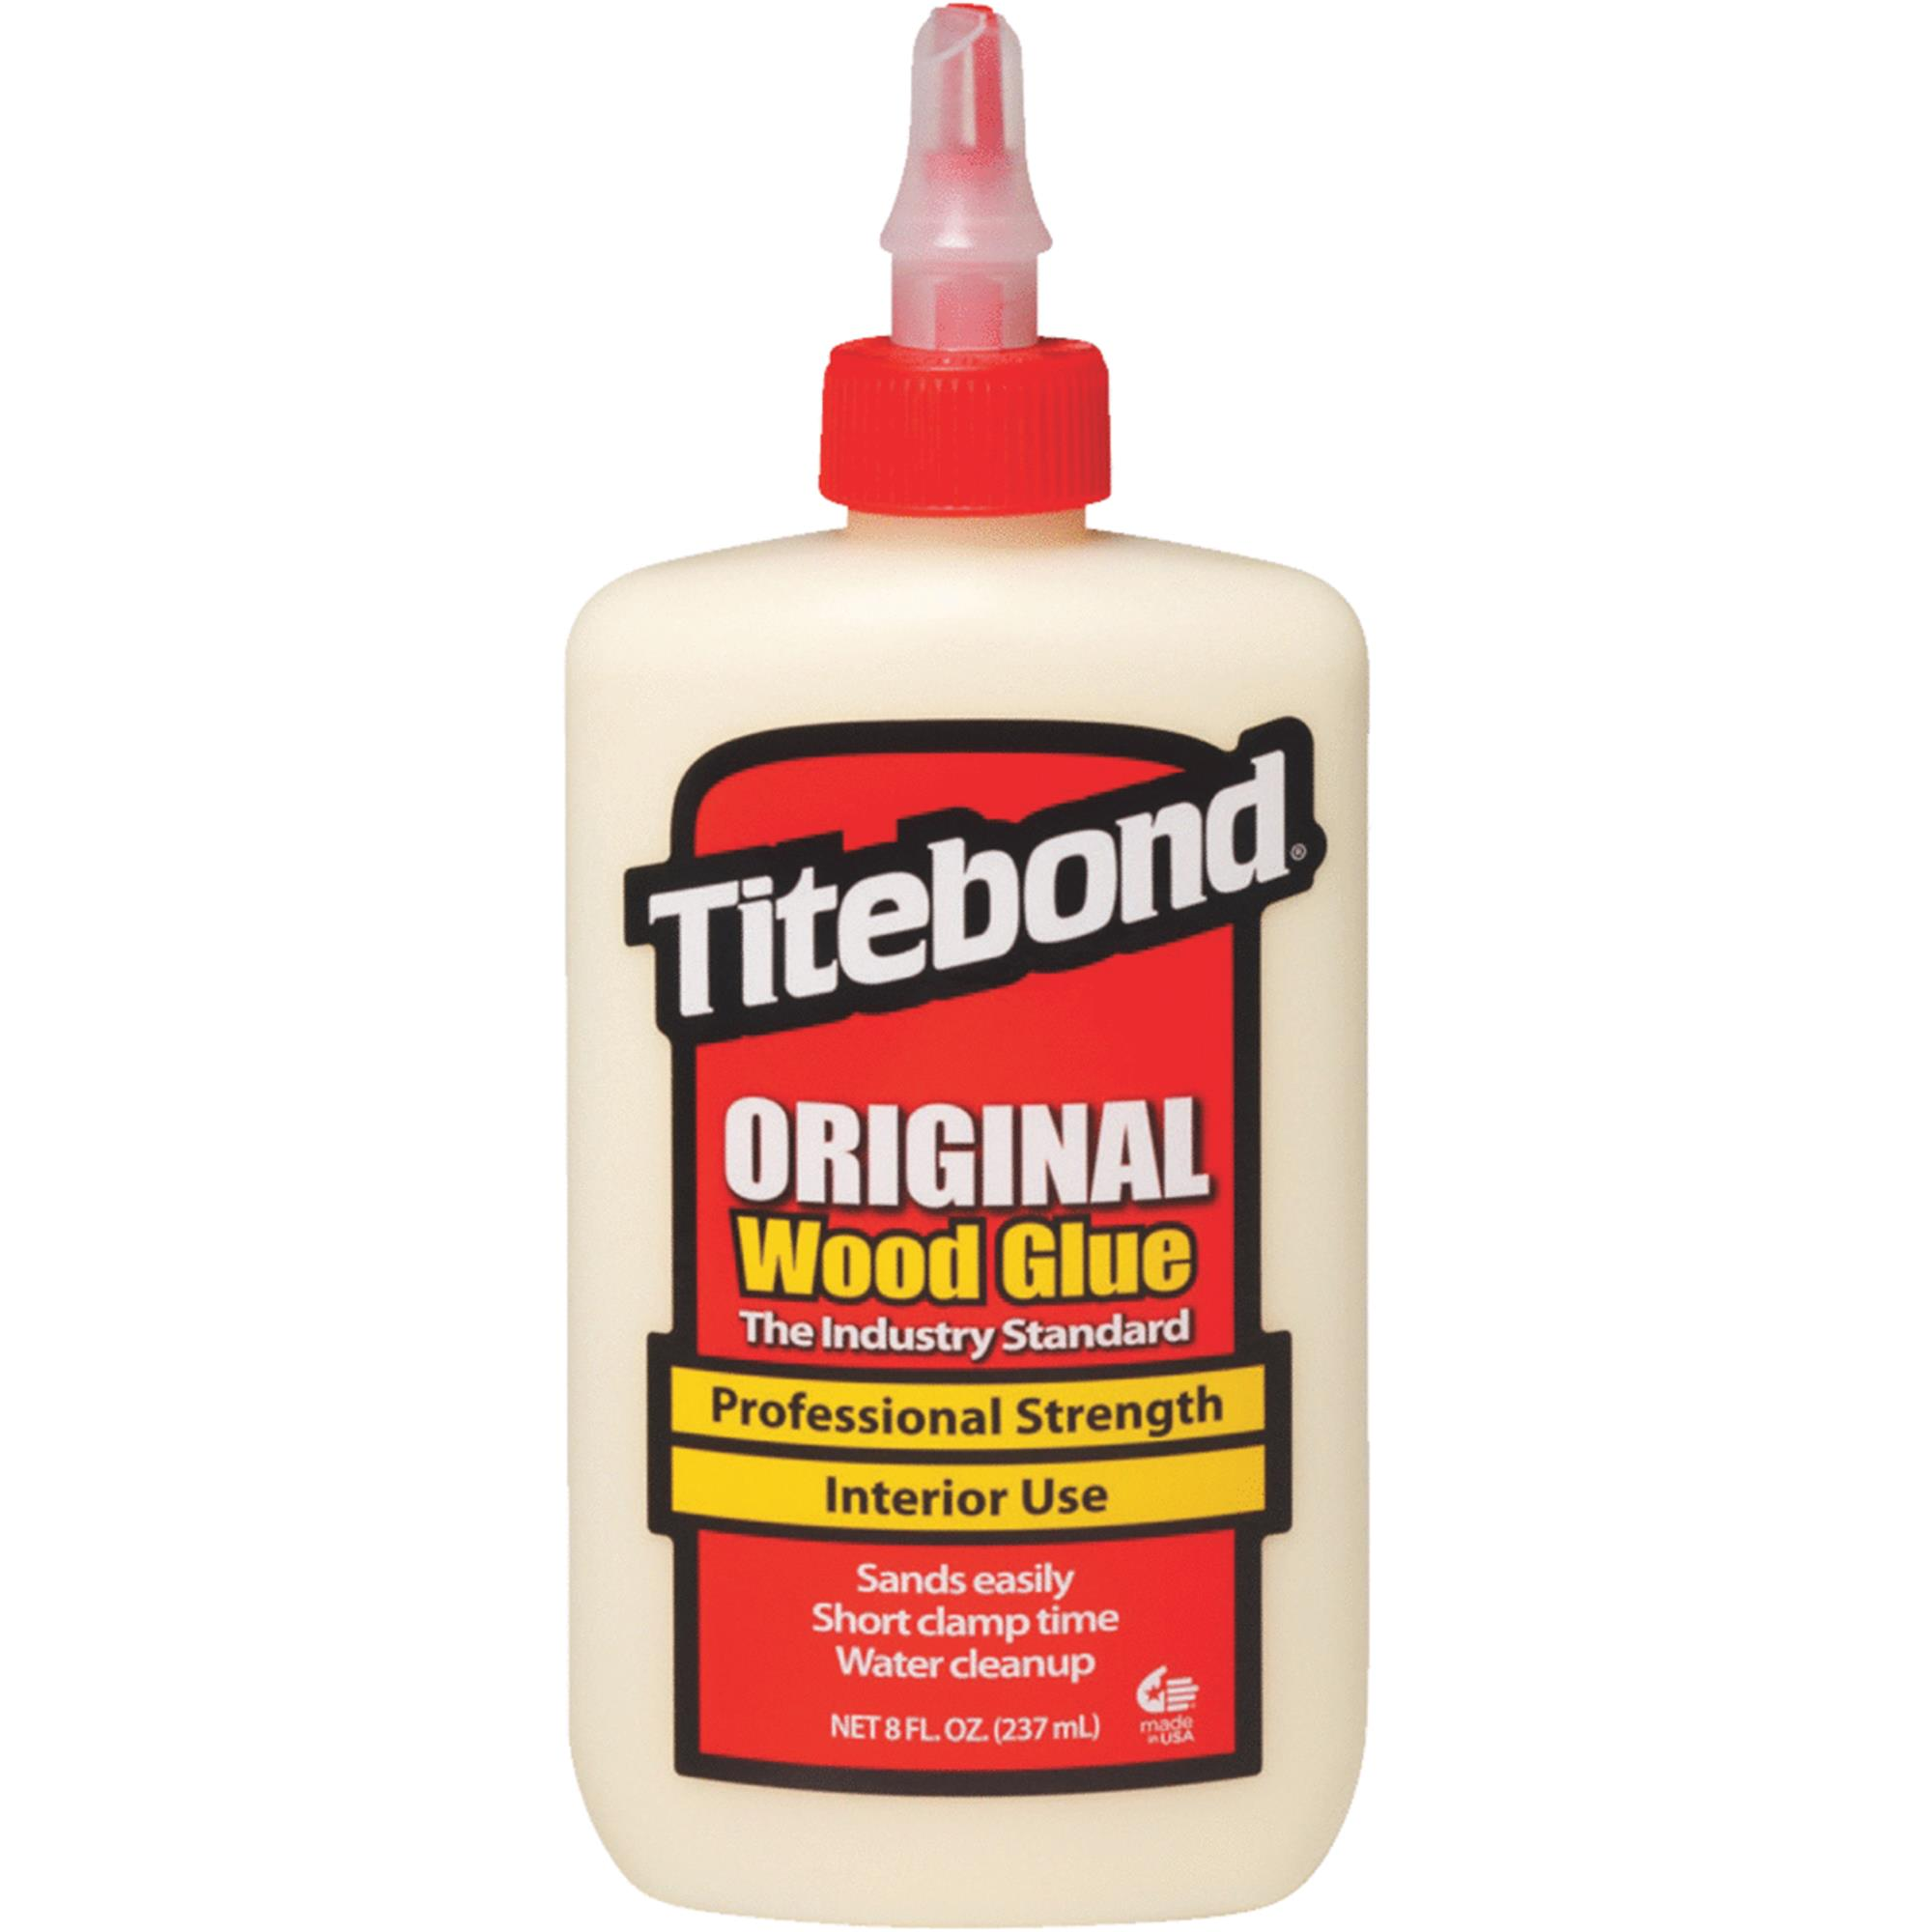 TITEBOND 5063 Wood Glue, Original, 8 Oz, Ylw